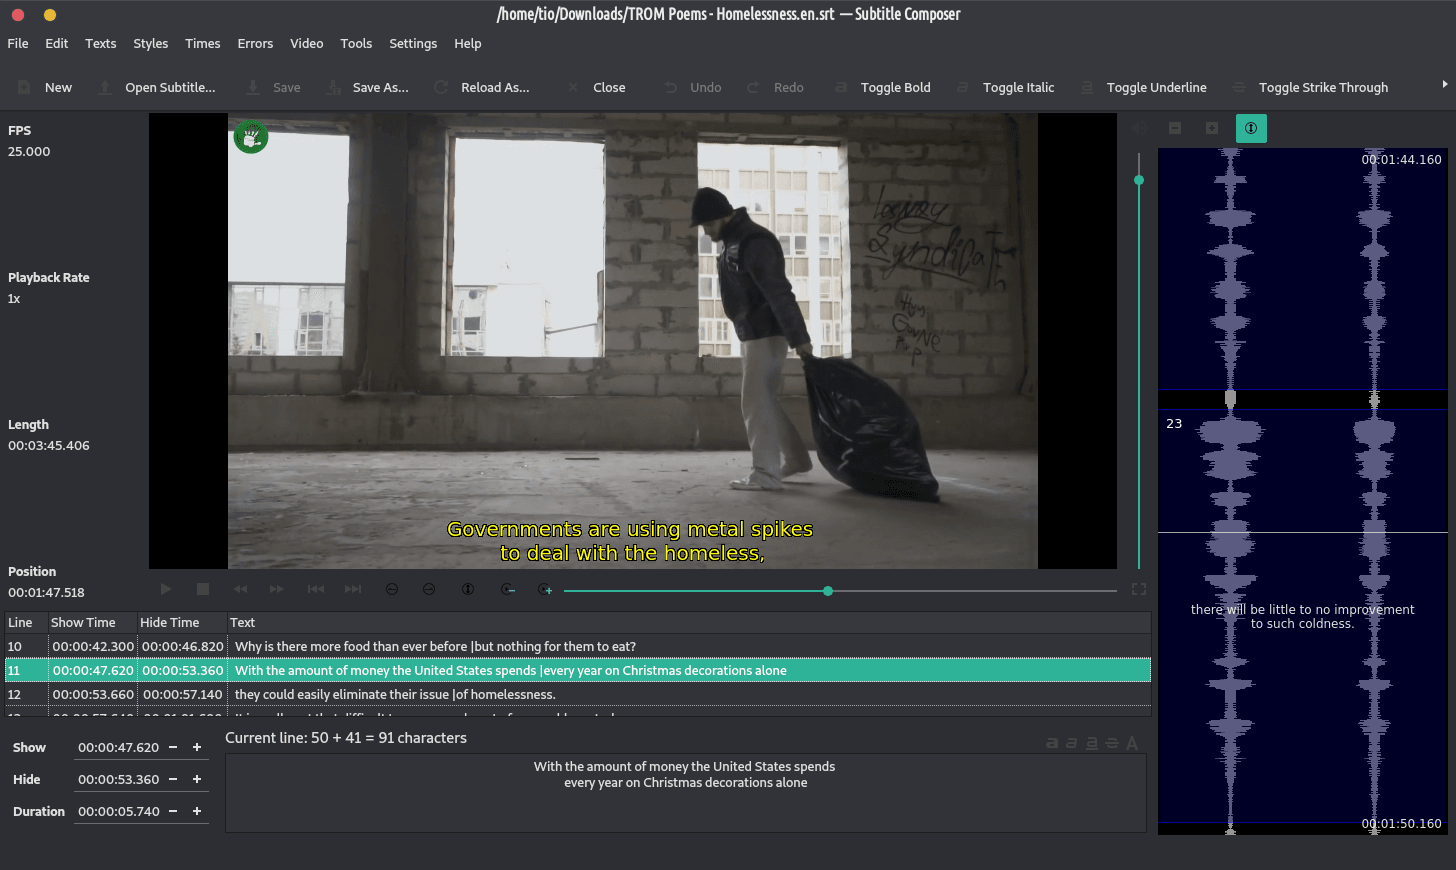 subtitlecomposer